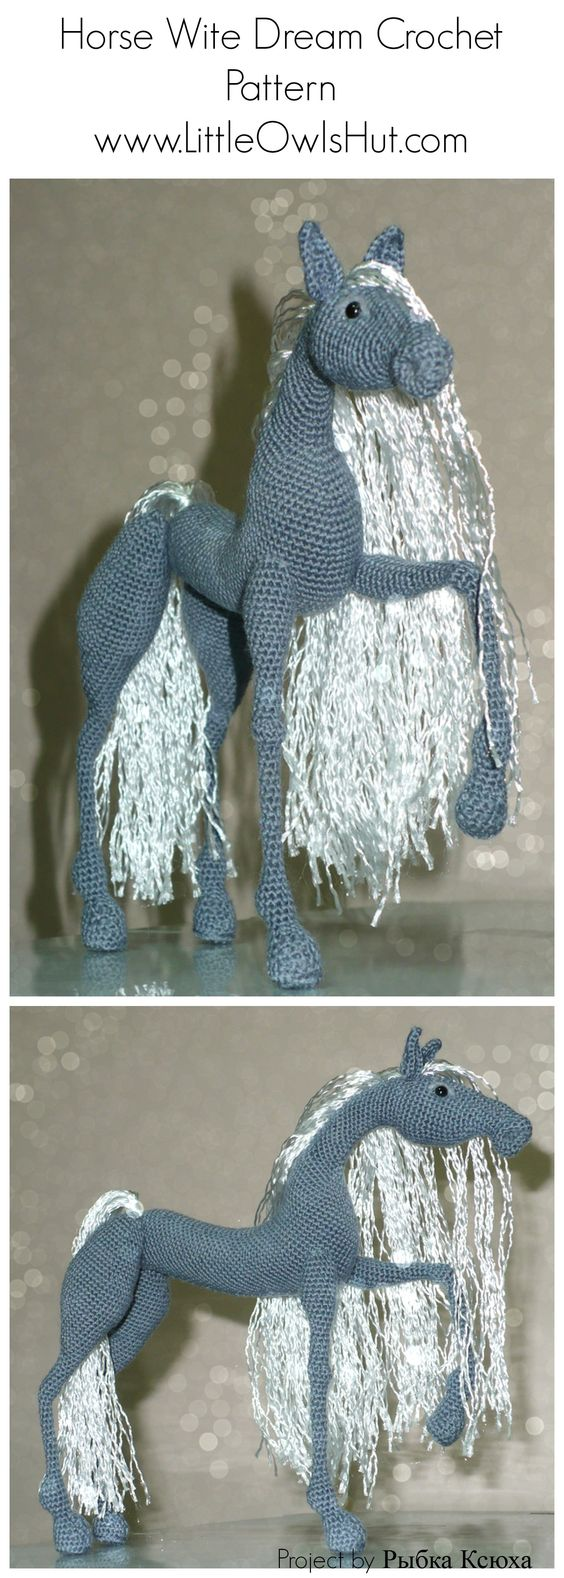 Toys, UX/UI Designer and Crochet projects on Pinterest